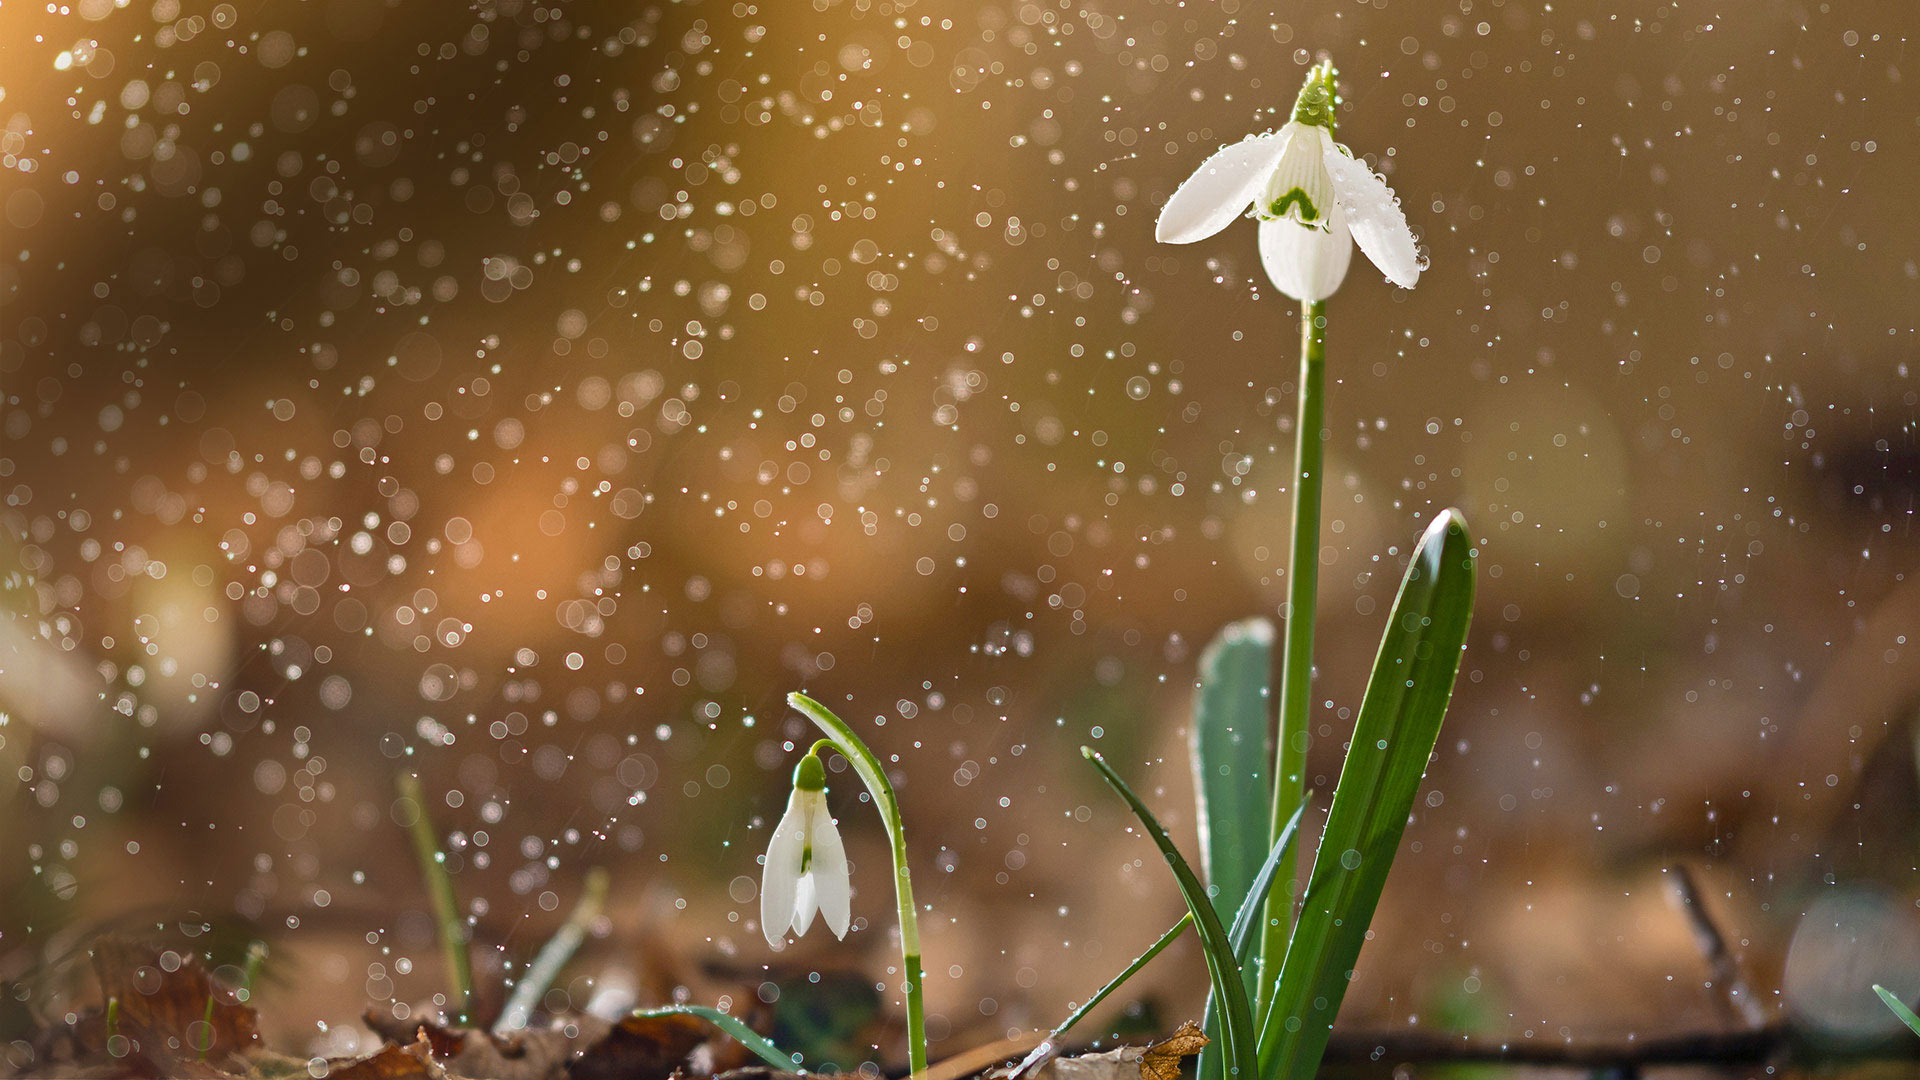 A snowdrop in bloom (© Péter Hegedűs/Getty Images)(Bing United States)